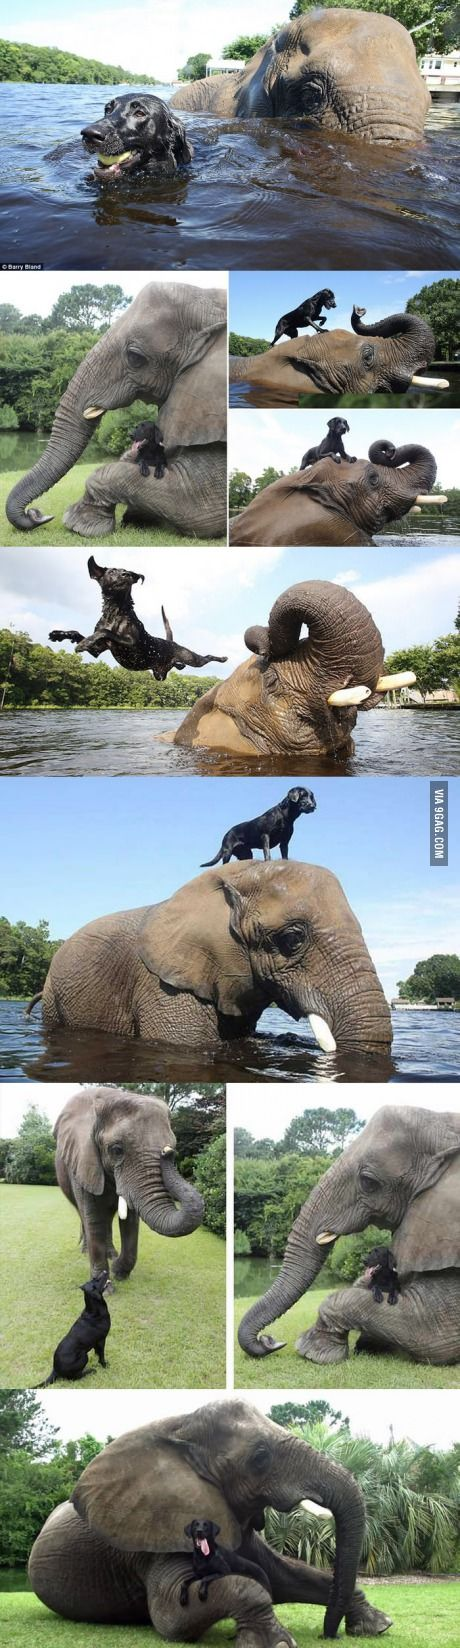 Natural buddies, dog and elephant